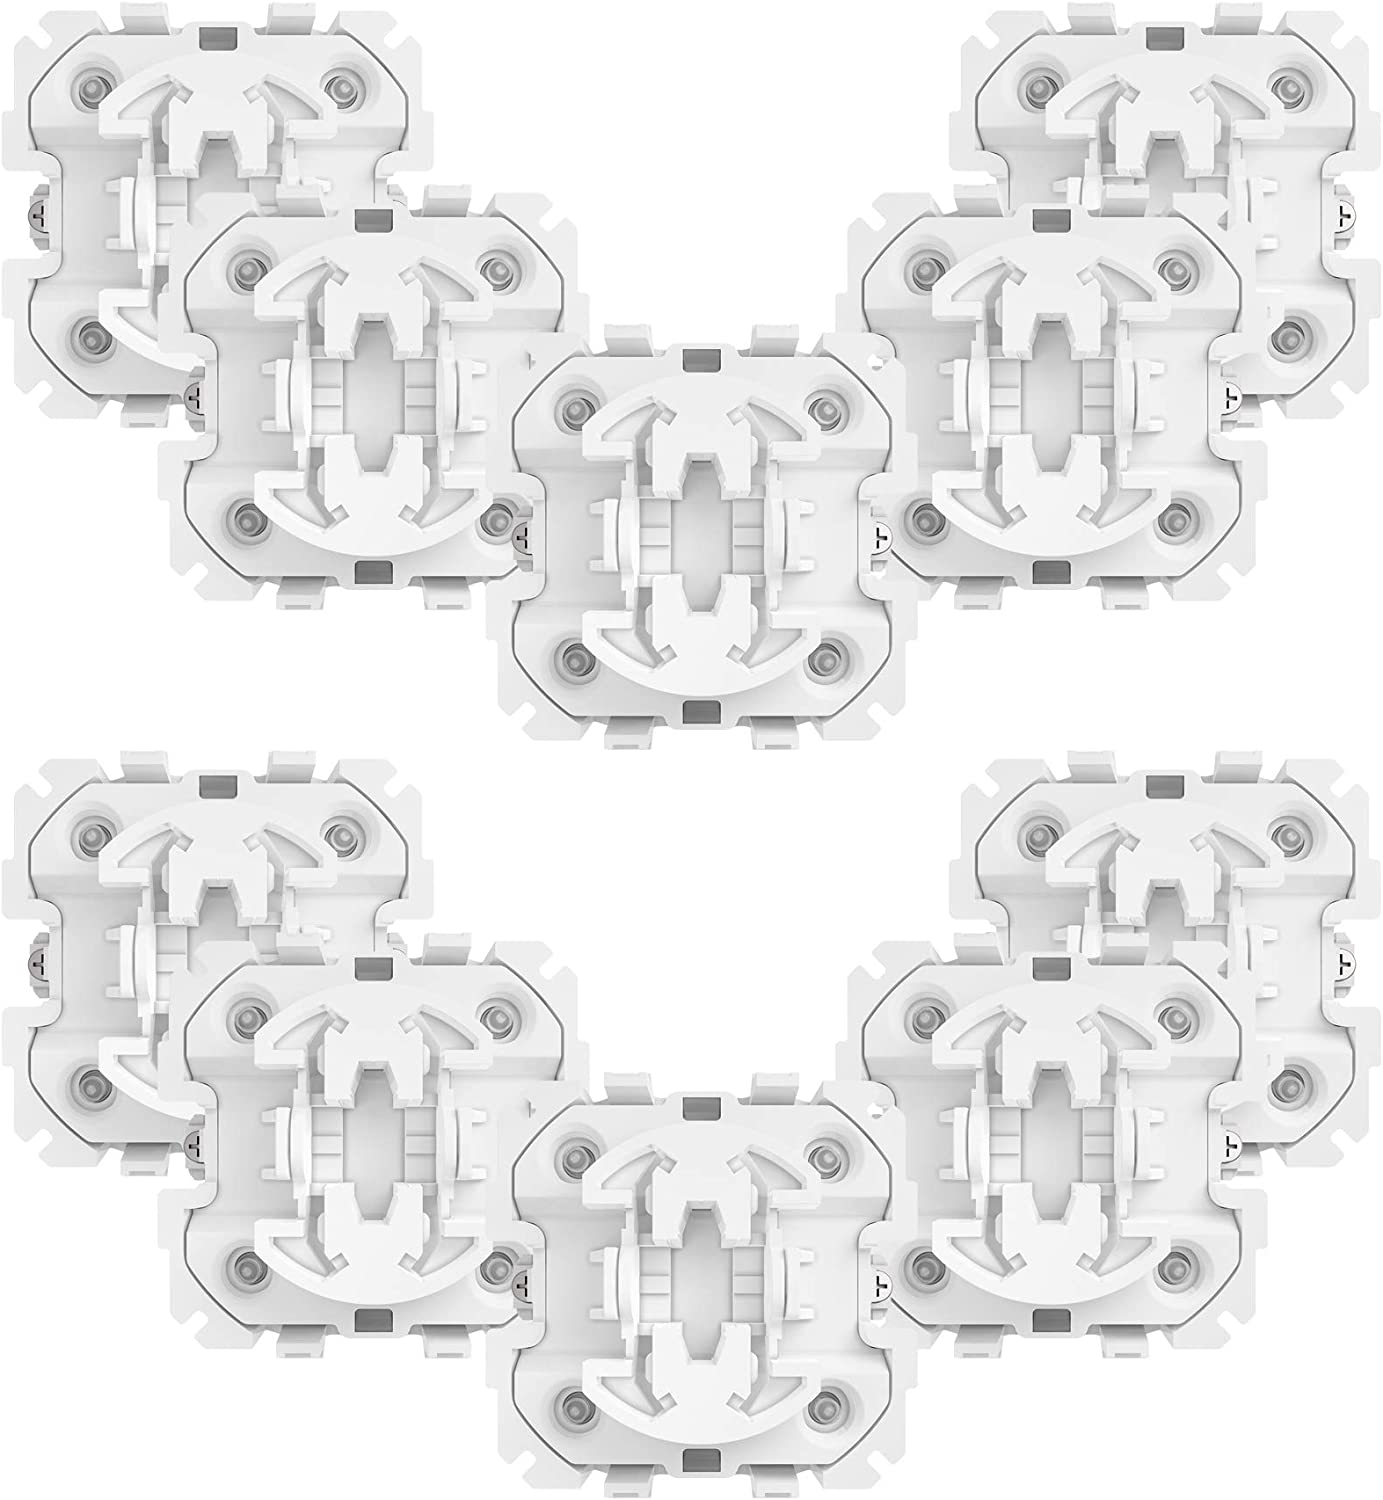 2021 Fibaro Set of 10 dimmer Walli Unit - switches New life